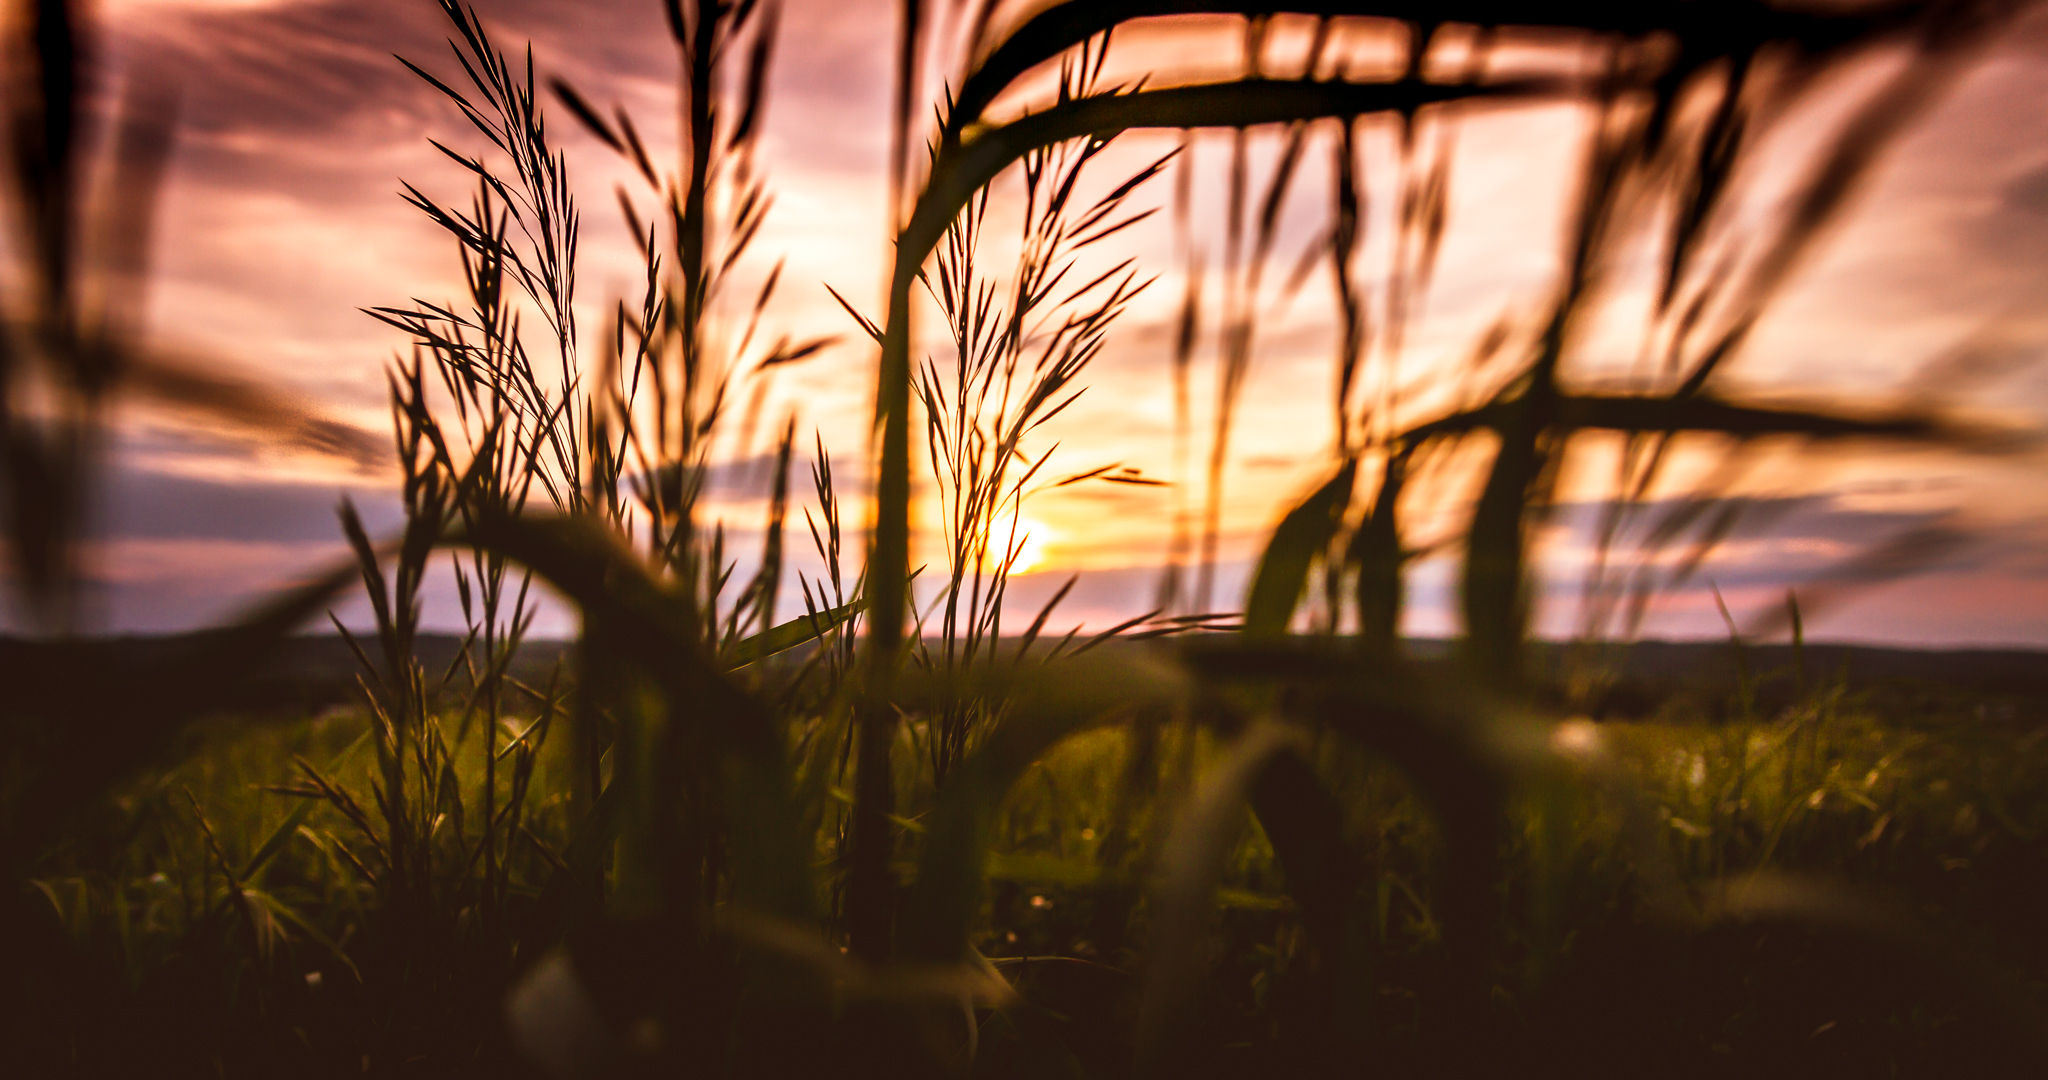 Sunset through grass photo courtesy of Peter Marcelli